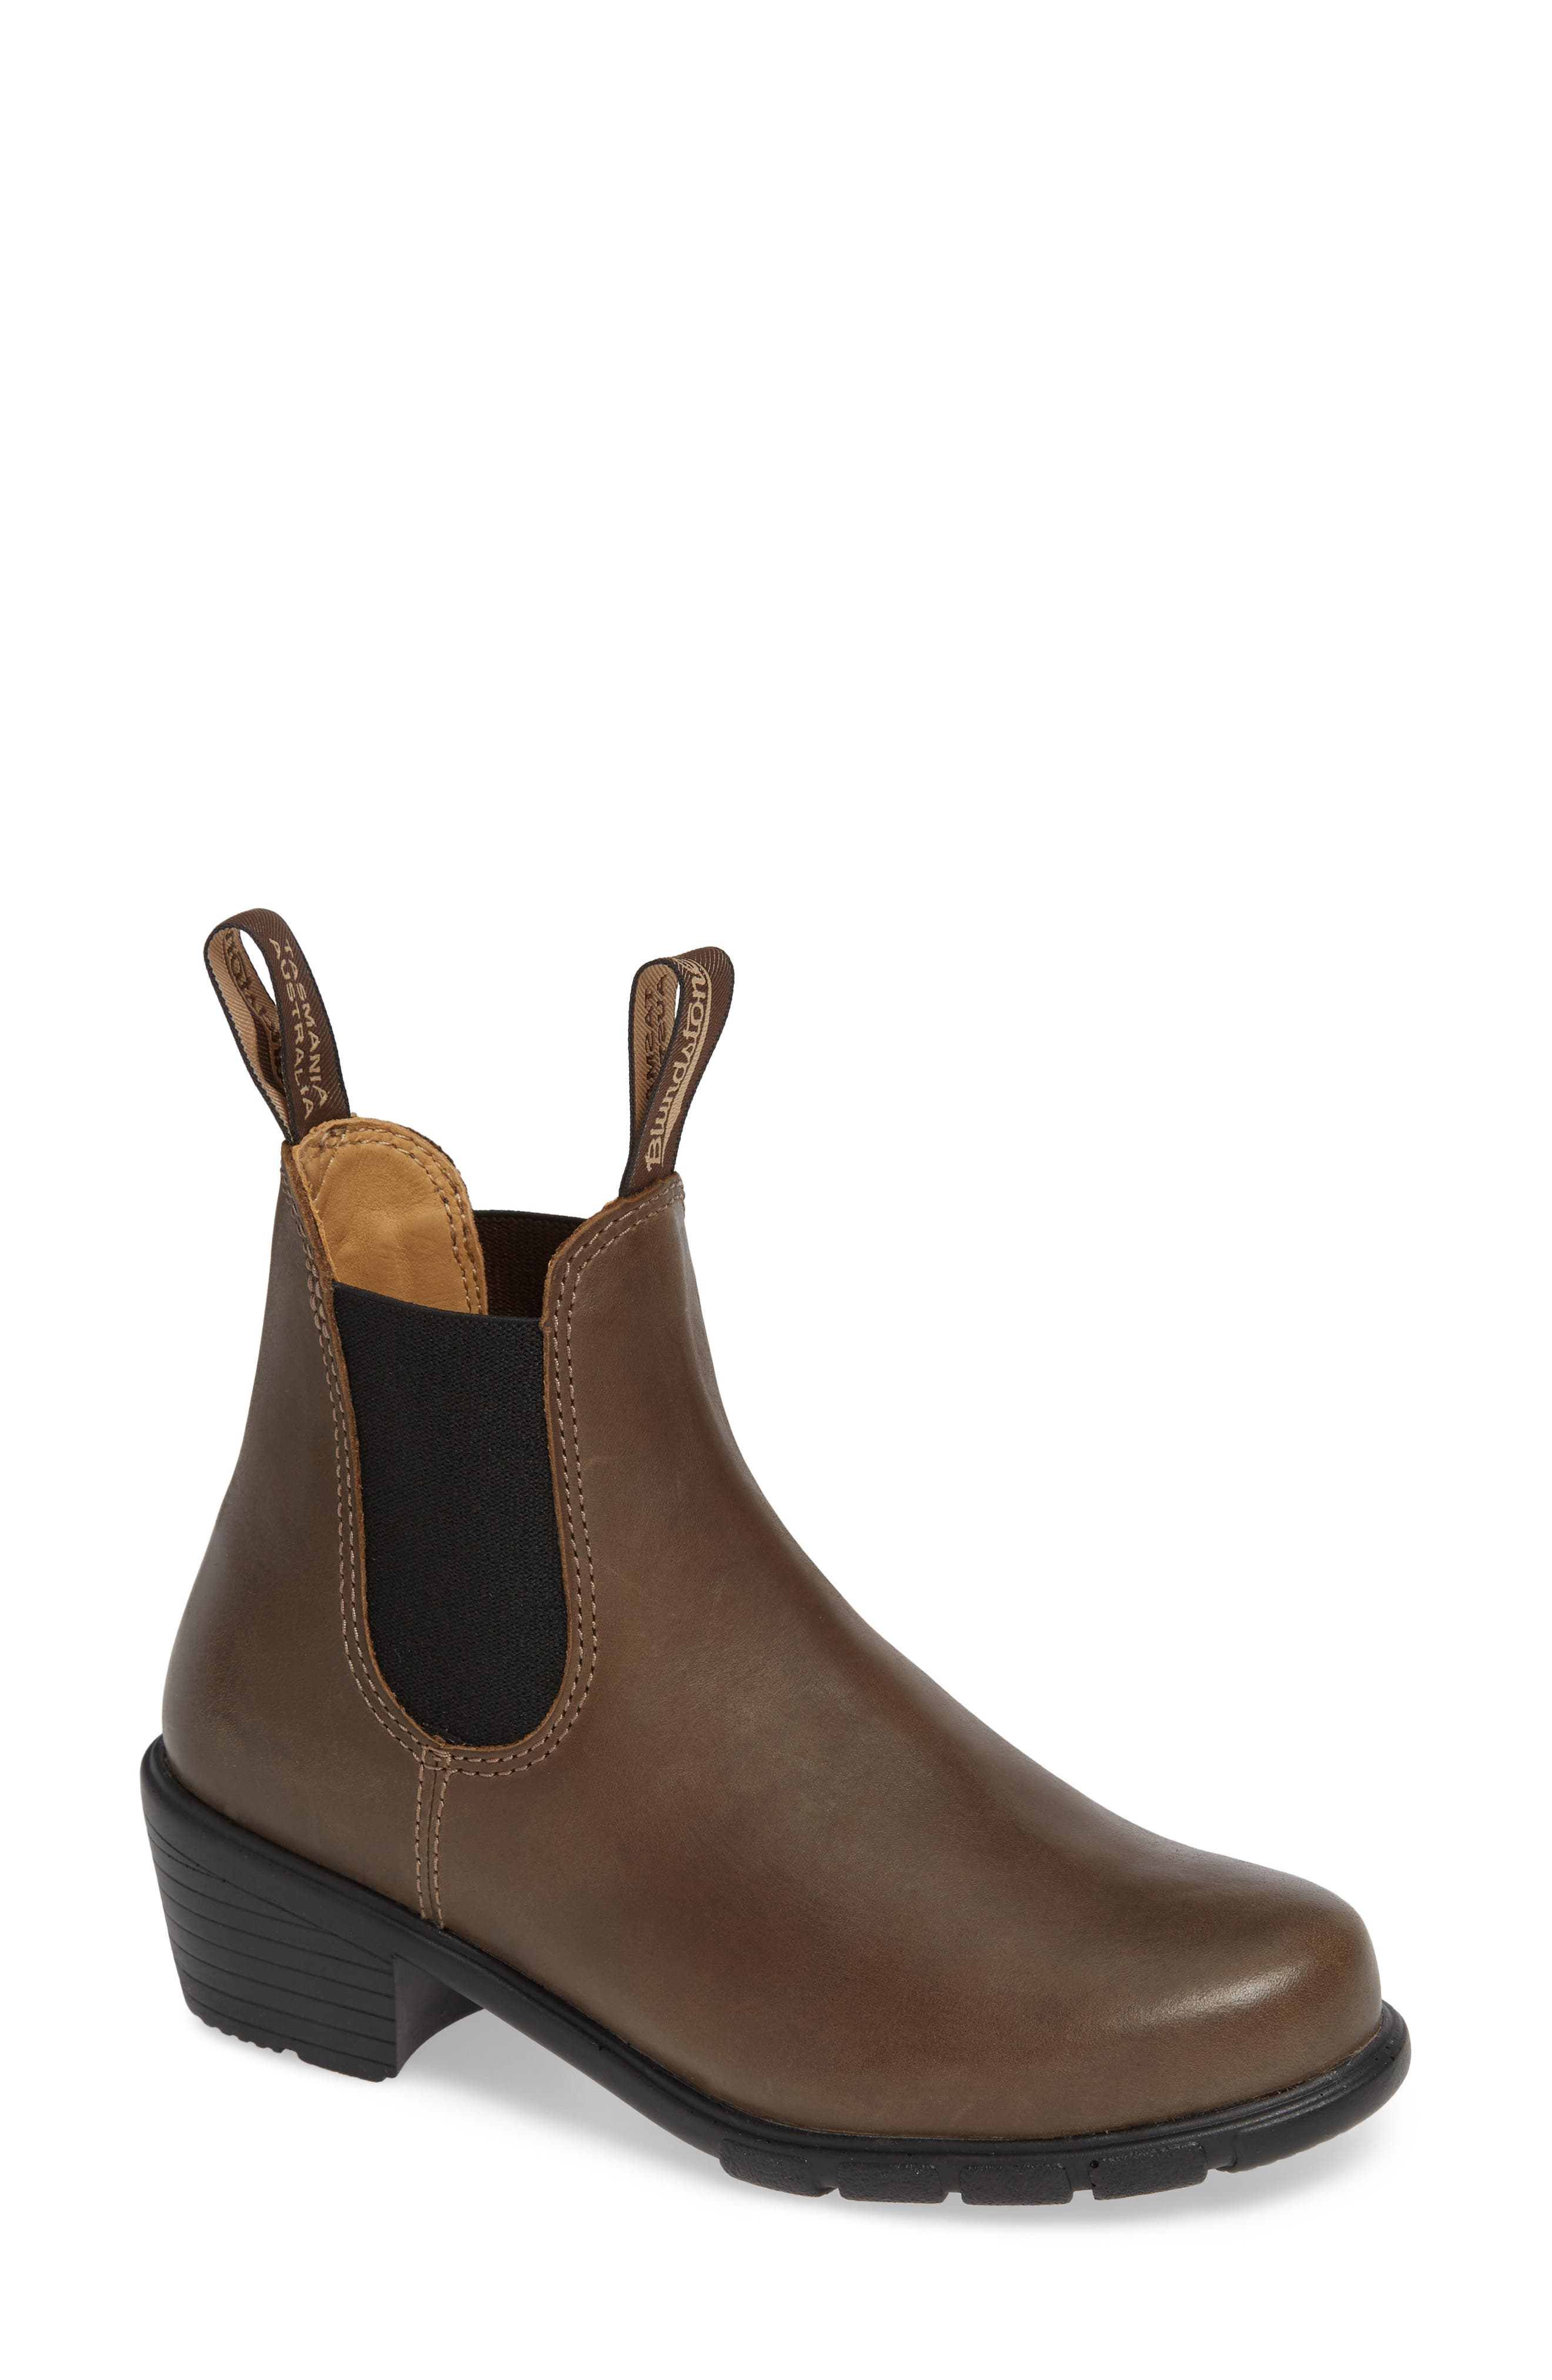 Blundstone 1671 Chelsea Boot, Main, color, ANTIQUE TAUPE LEATHER